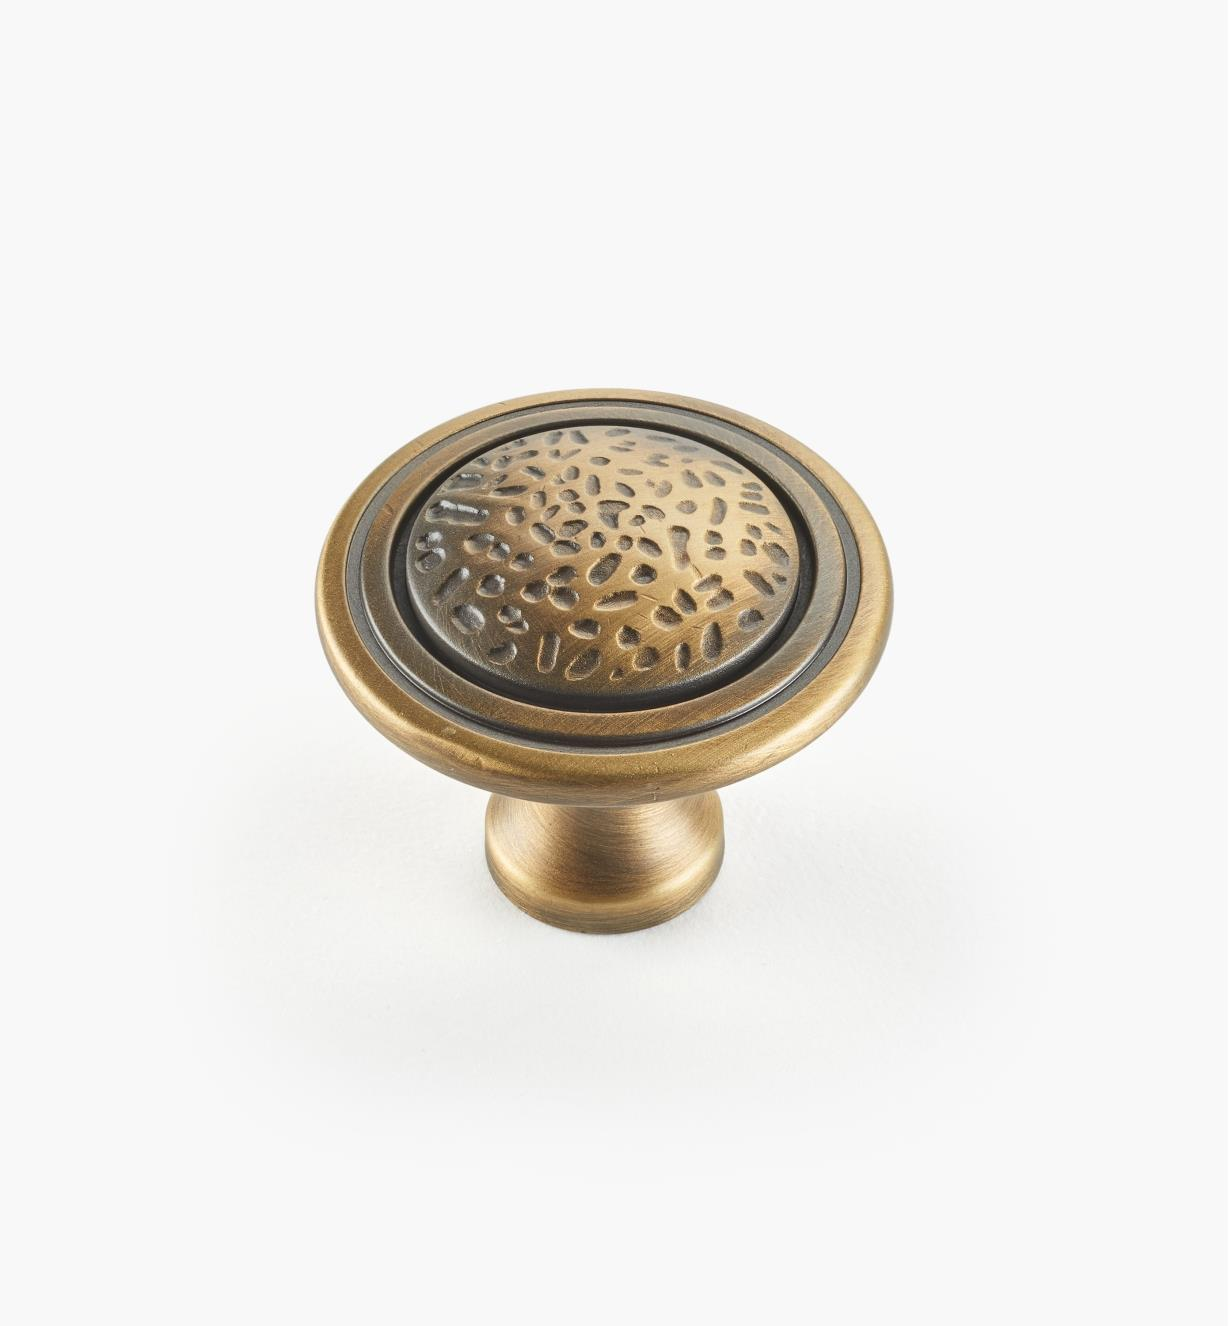 02W4001 - Antique Brass Knob